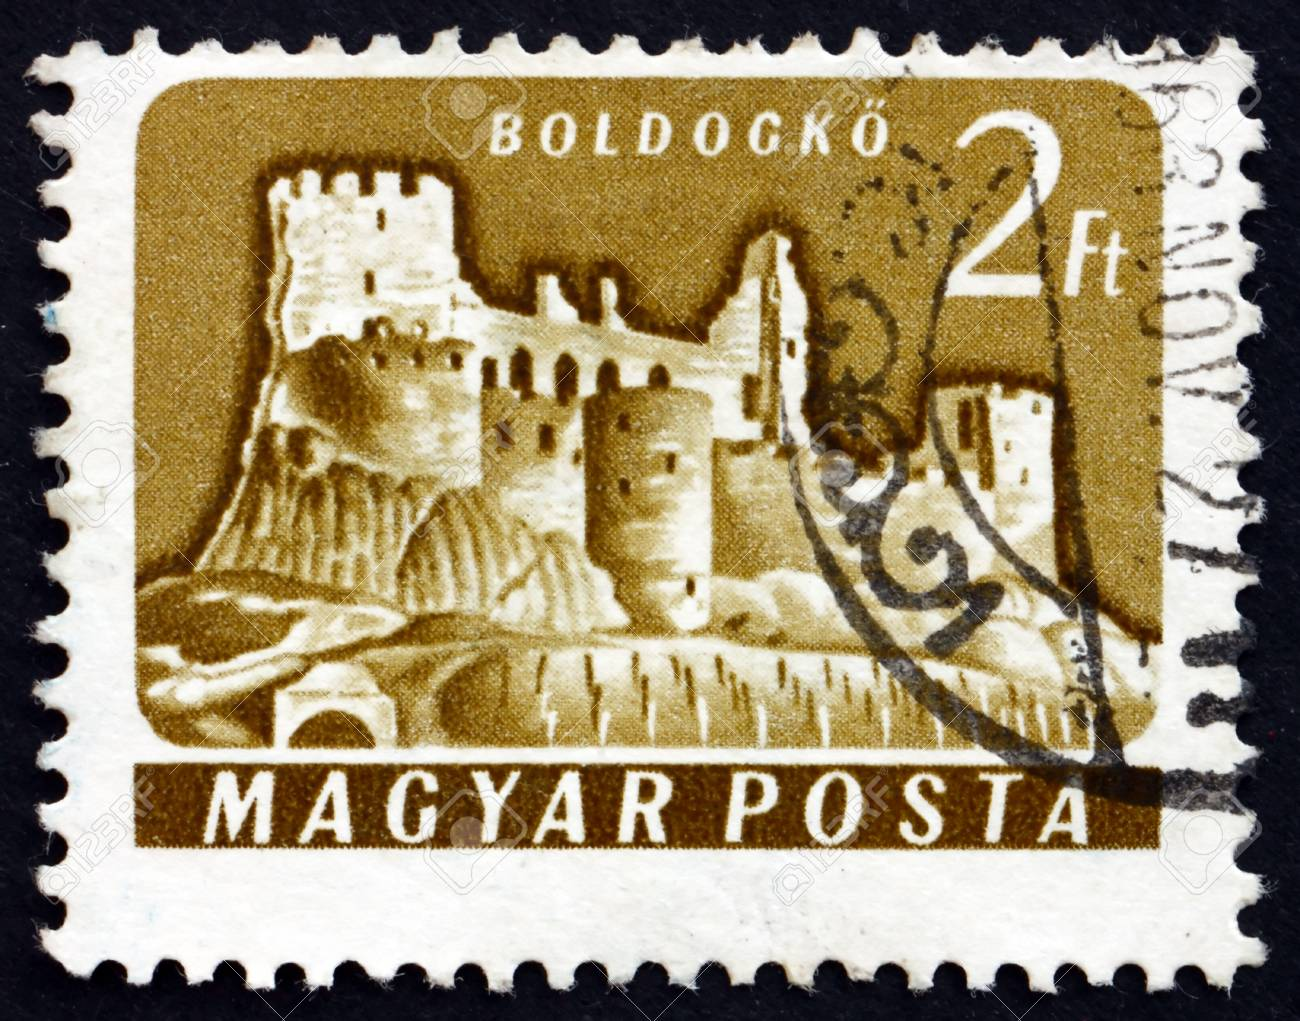 HUNGARY - CIRCA 1961: a stamp printed in the Hungary shows Boldogko Castle, Hungary, circa 1961 Stock Photo - 17950694